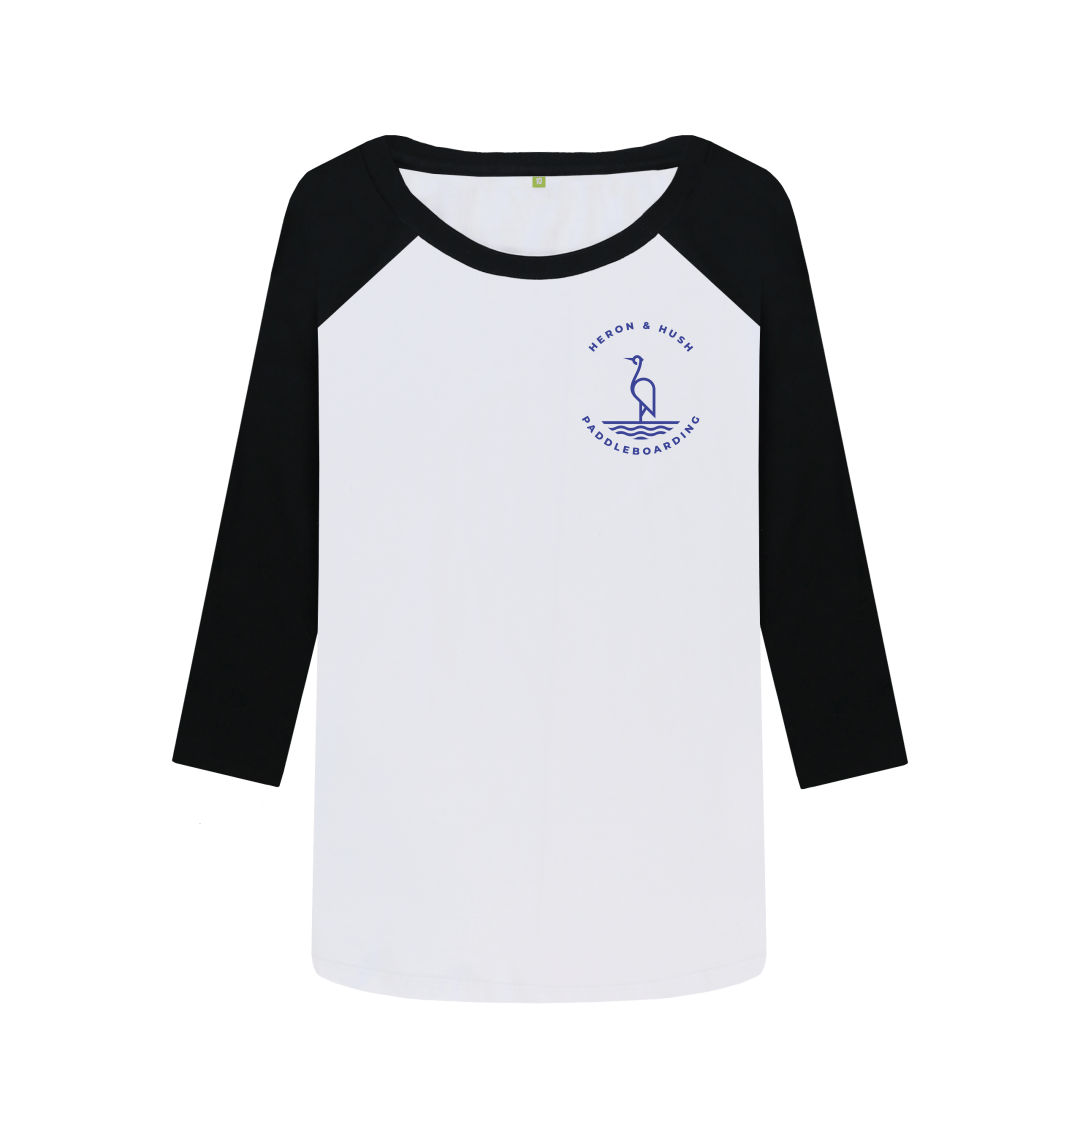 H&H Paddleboarding Ladies Baseball Tee S